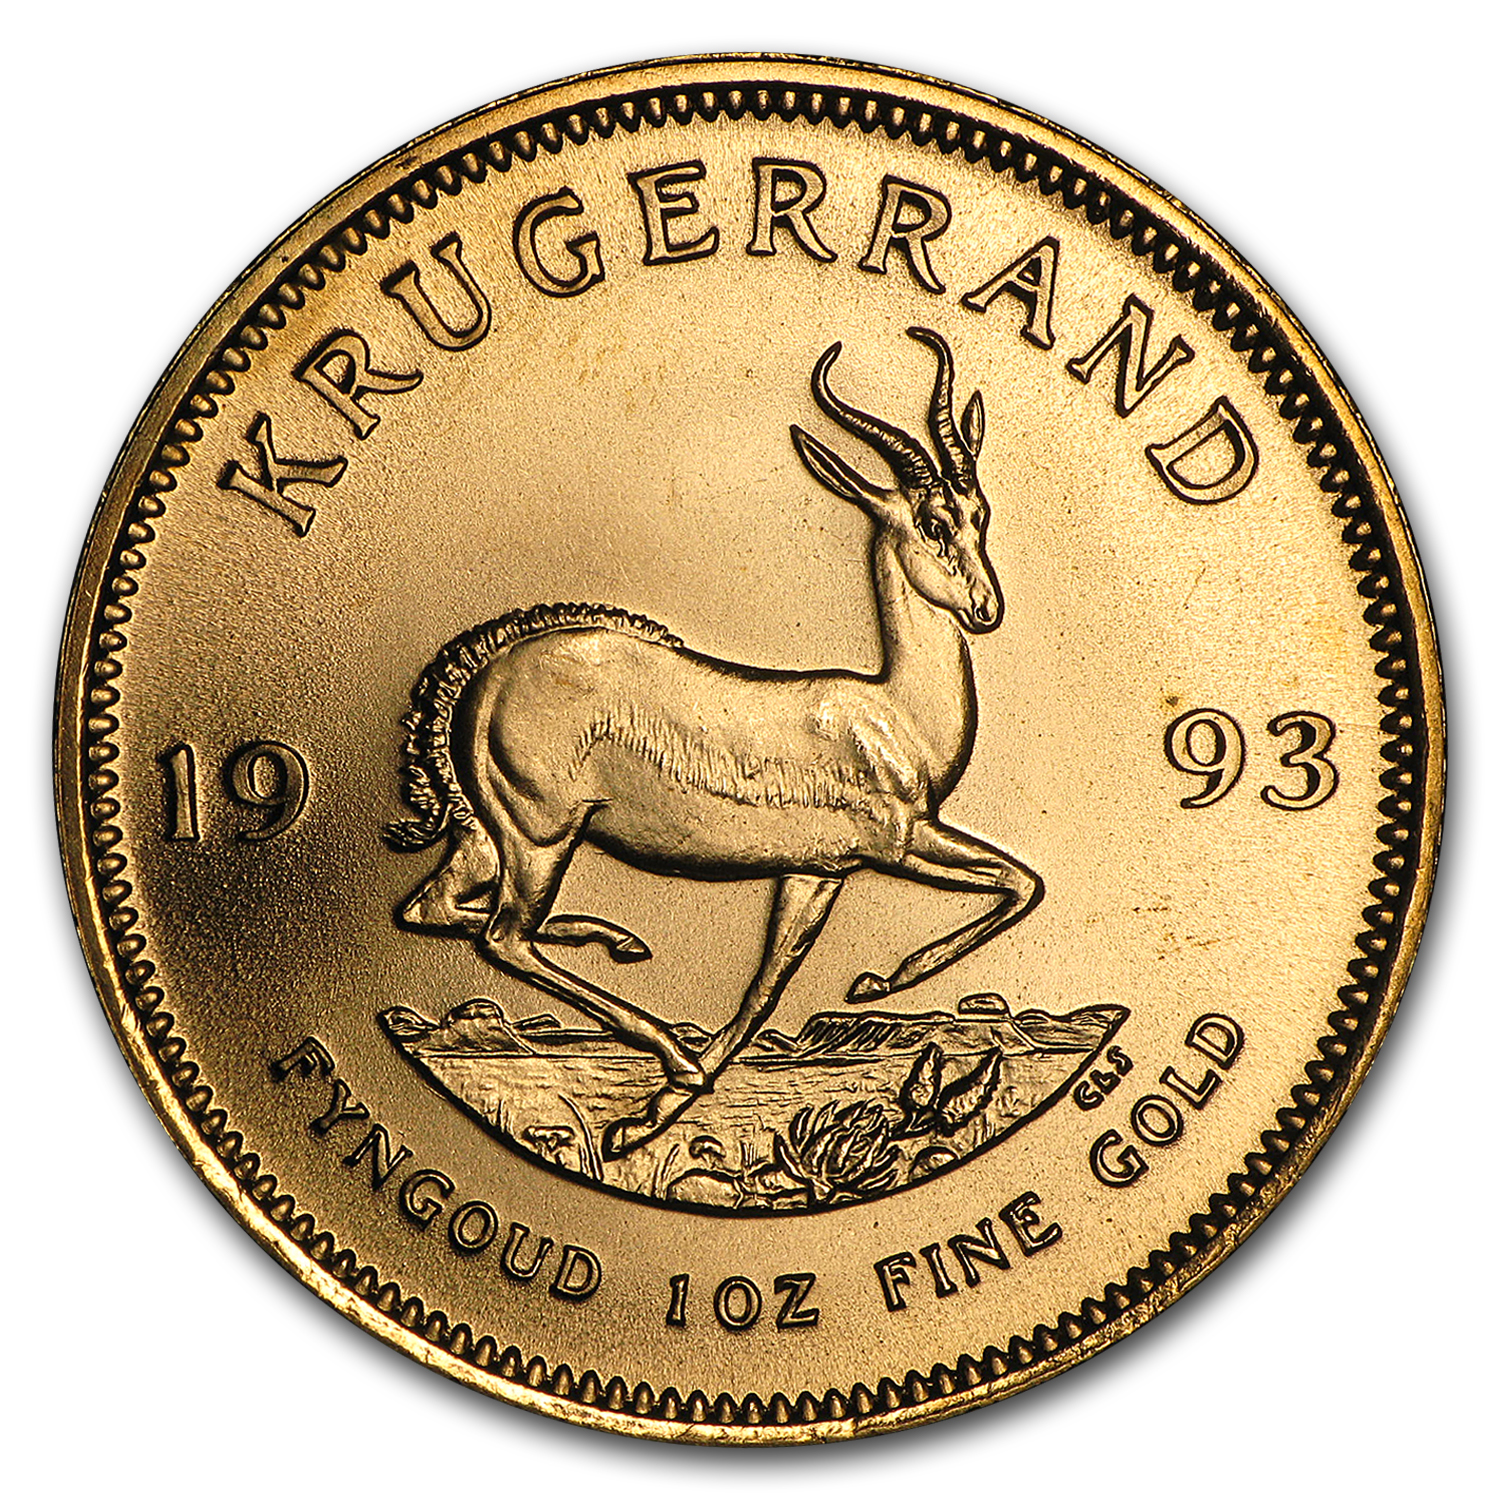 1993 1 oz Gold South African Krugerrand